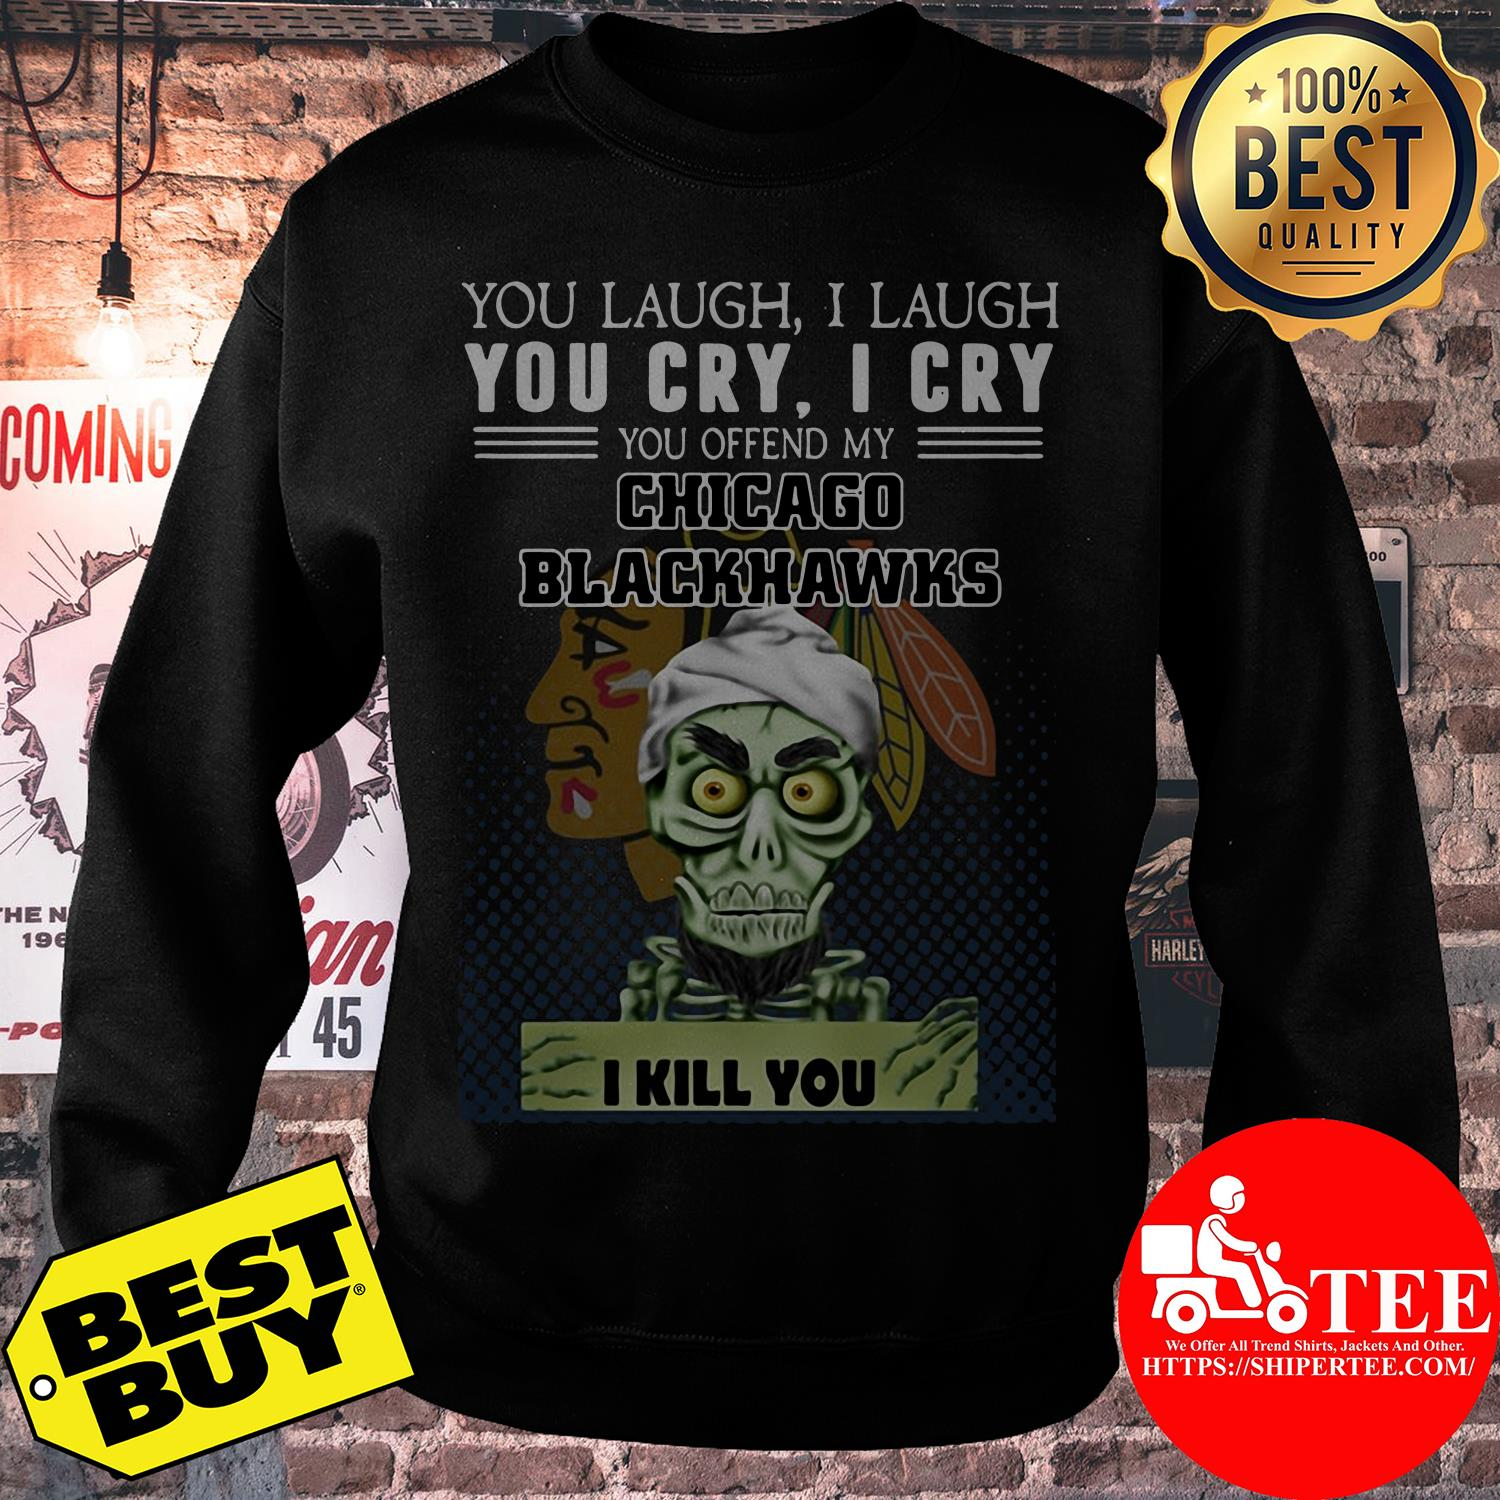 You laugh I laugh you cry I cry you offend my Chicago Blackhawks sweatshirt